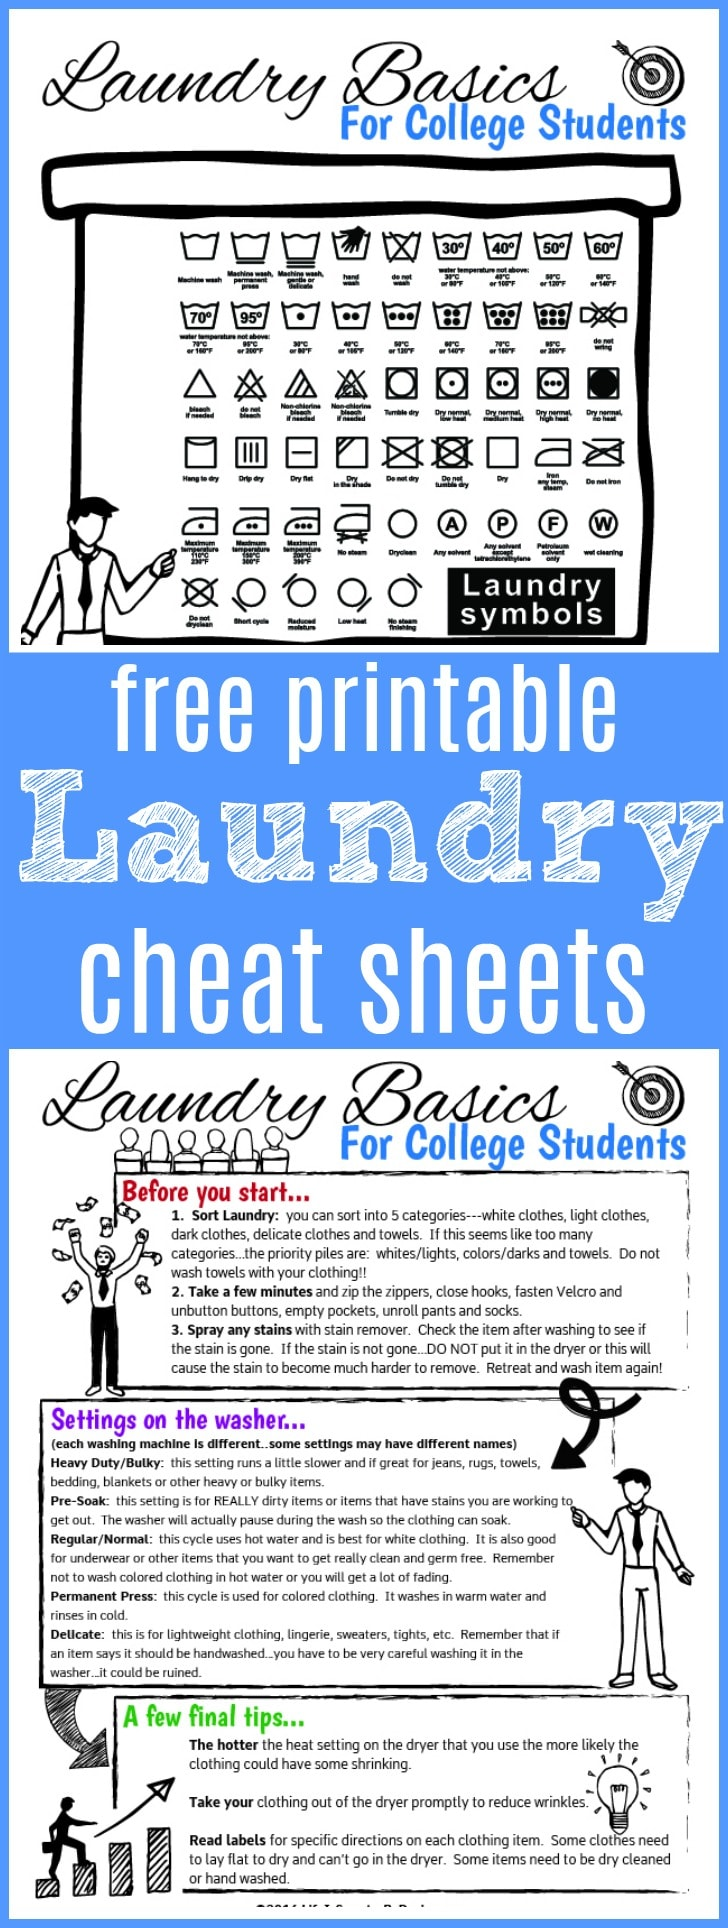 laundry cheat sheets for college students